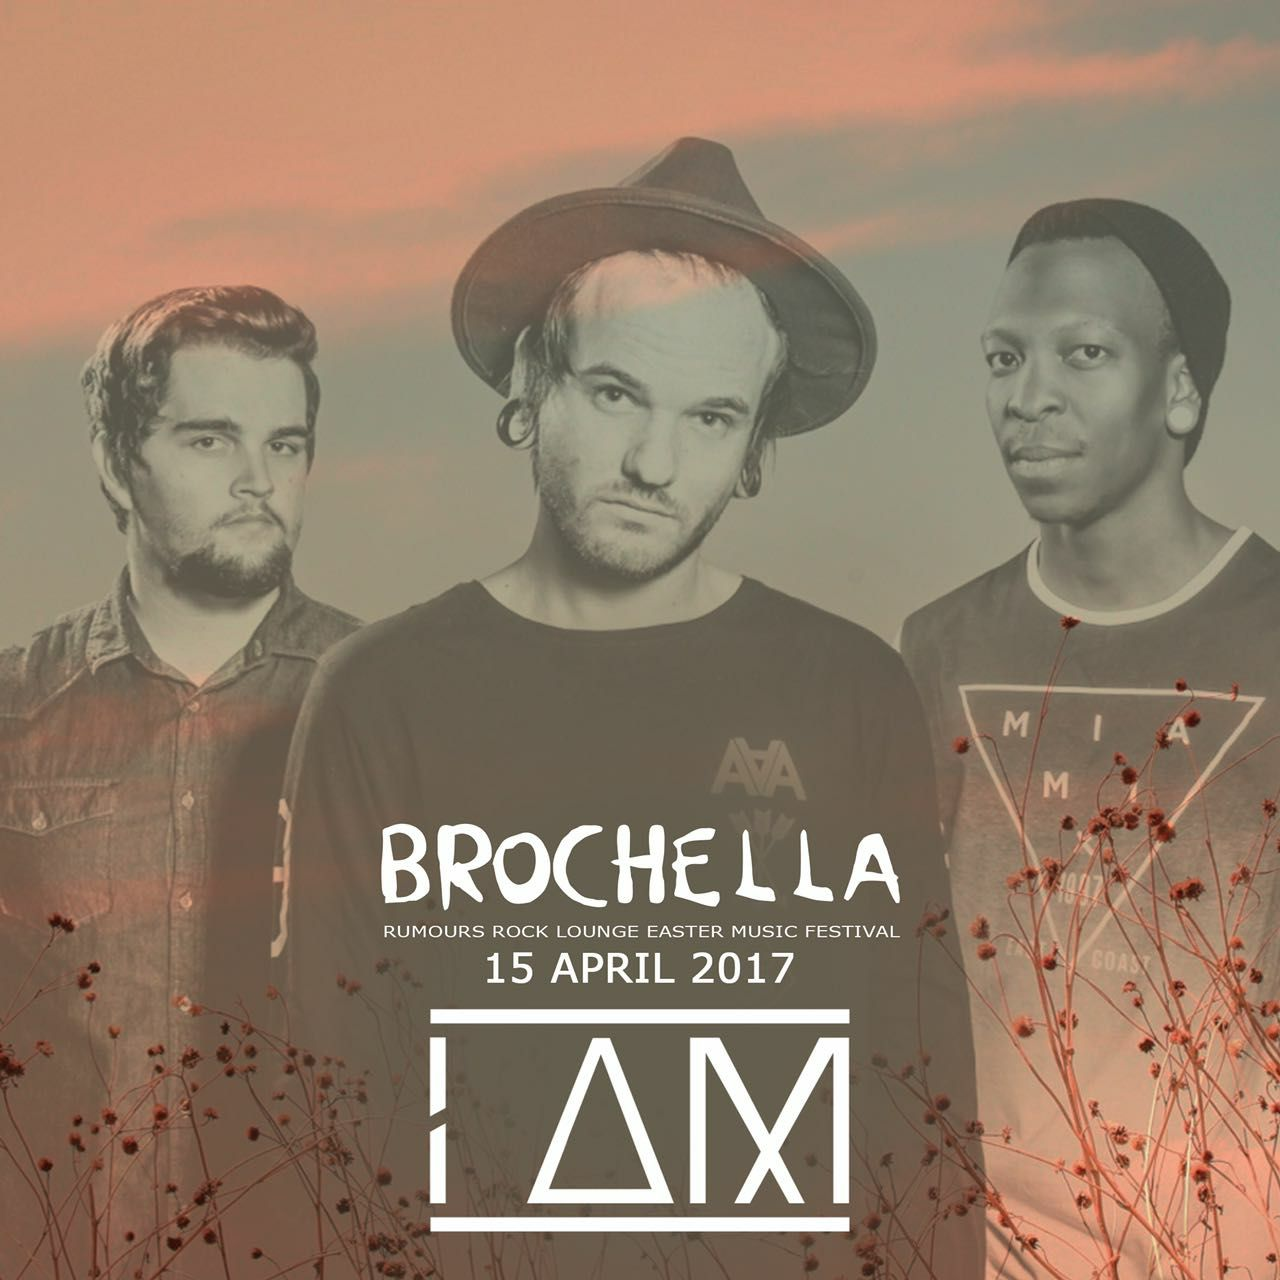 We interview I AM about Brochella Festival